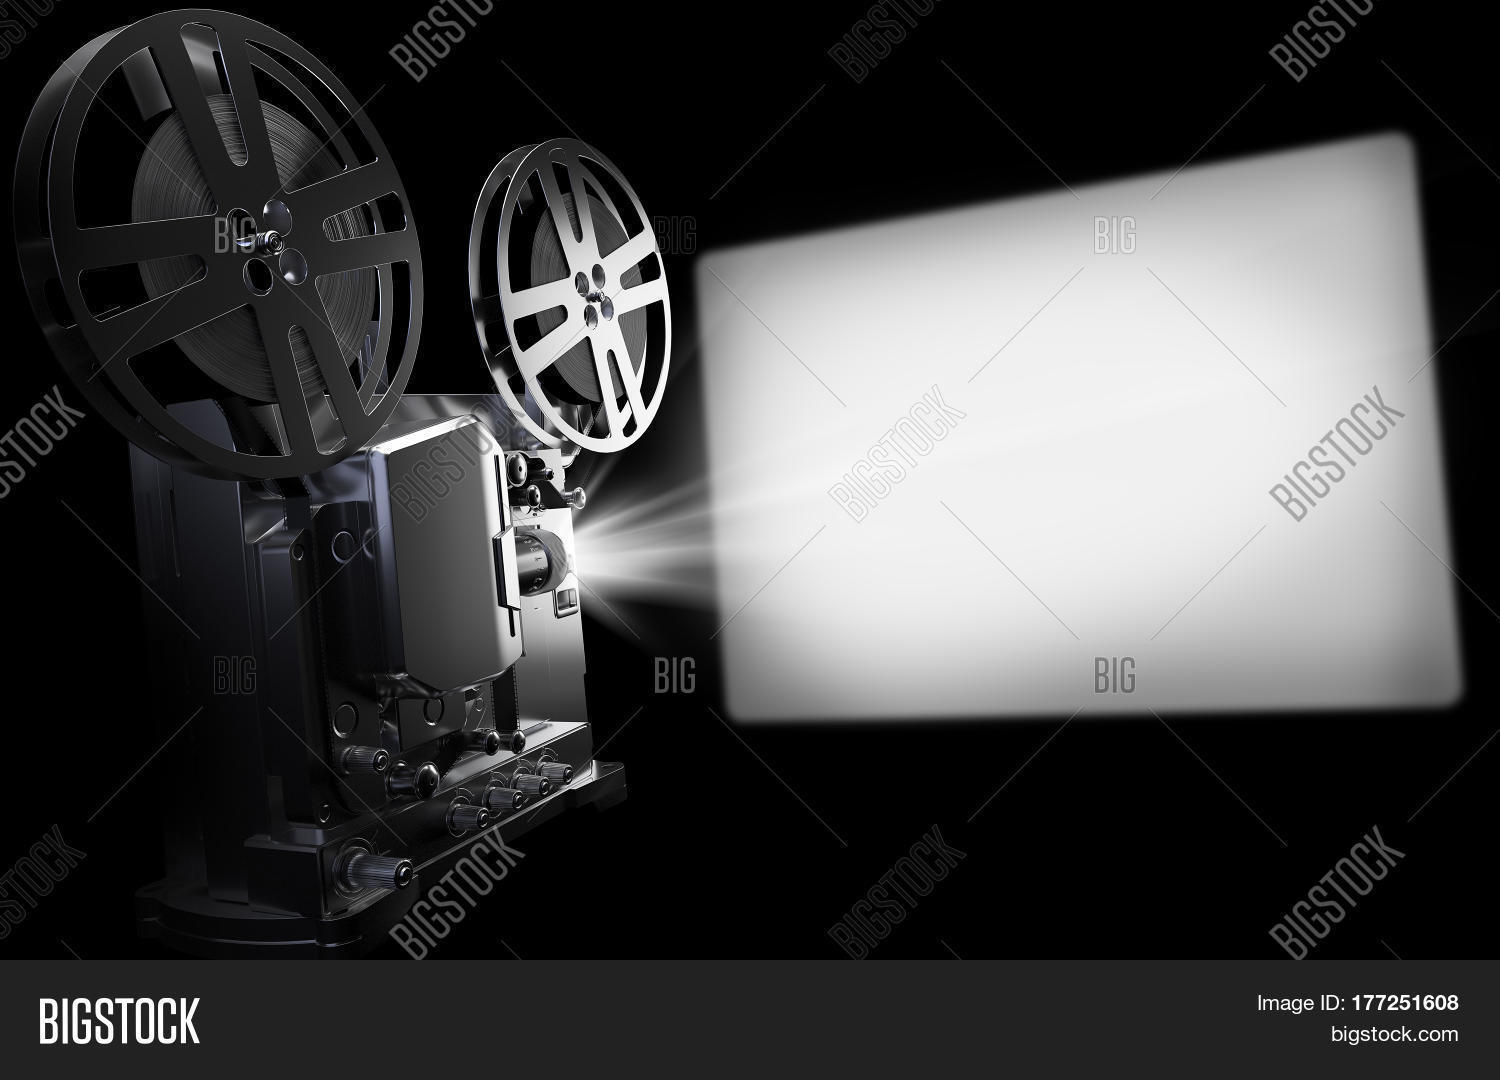 Old Cinema Projector And Screen Vintage Movie Or Video Concept 3d Rendering Illustration On